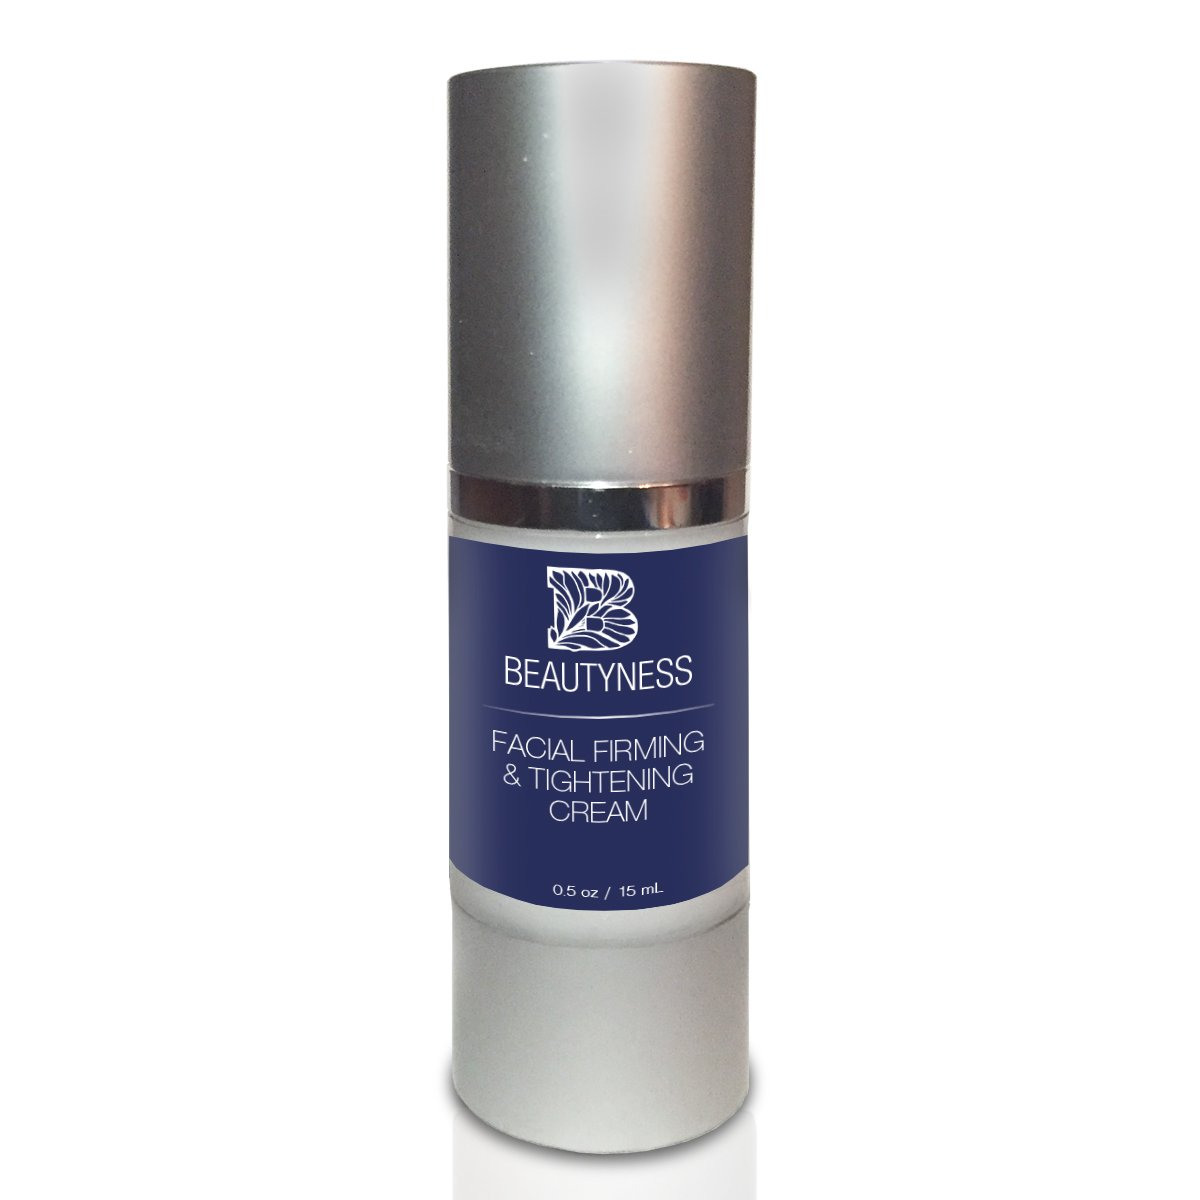 Facial Firming & Tightening Cream – Advance Formula To Tighten The Skin, Reduce Fine Lines & Wrinkles, & Under Eye Puffiness. Leaves Your Skin Looking Significantly Younger.